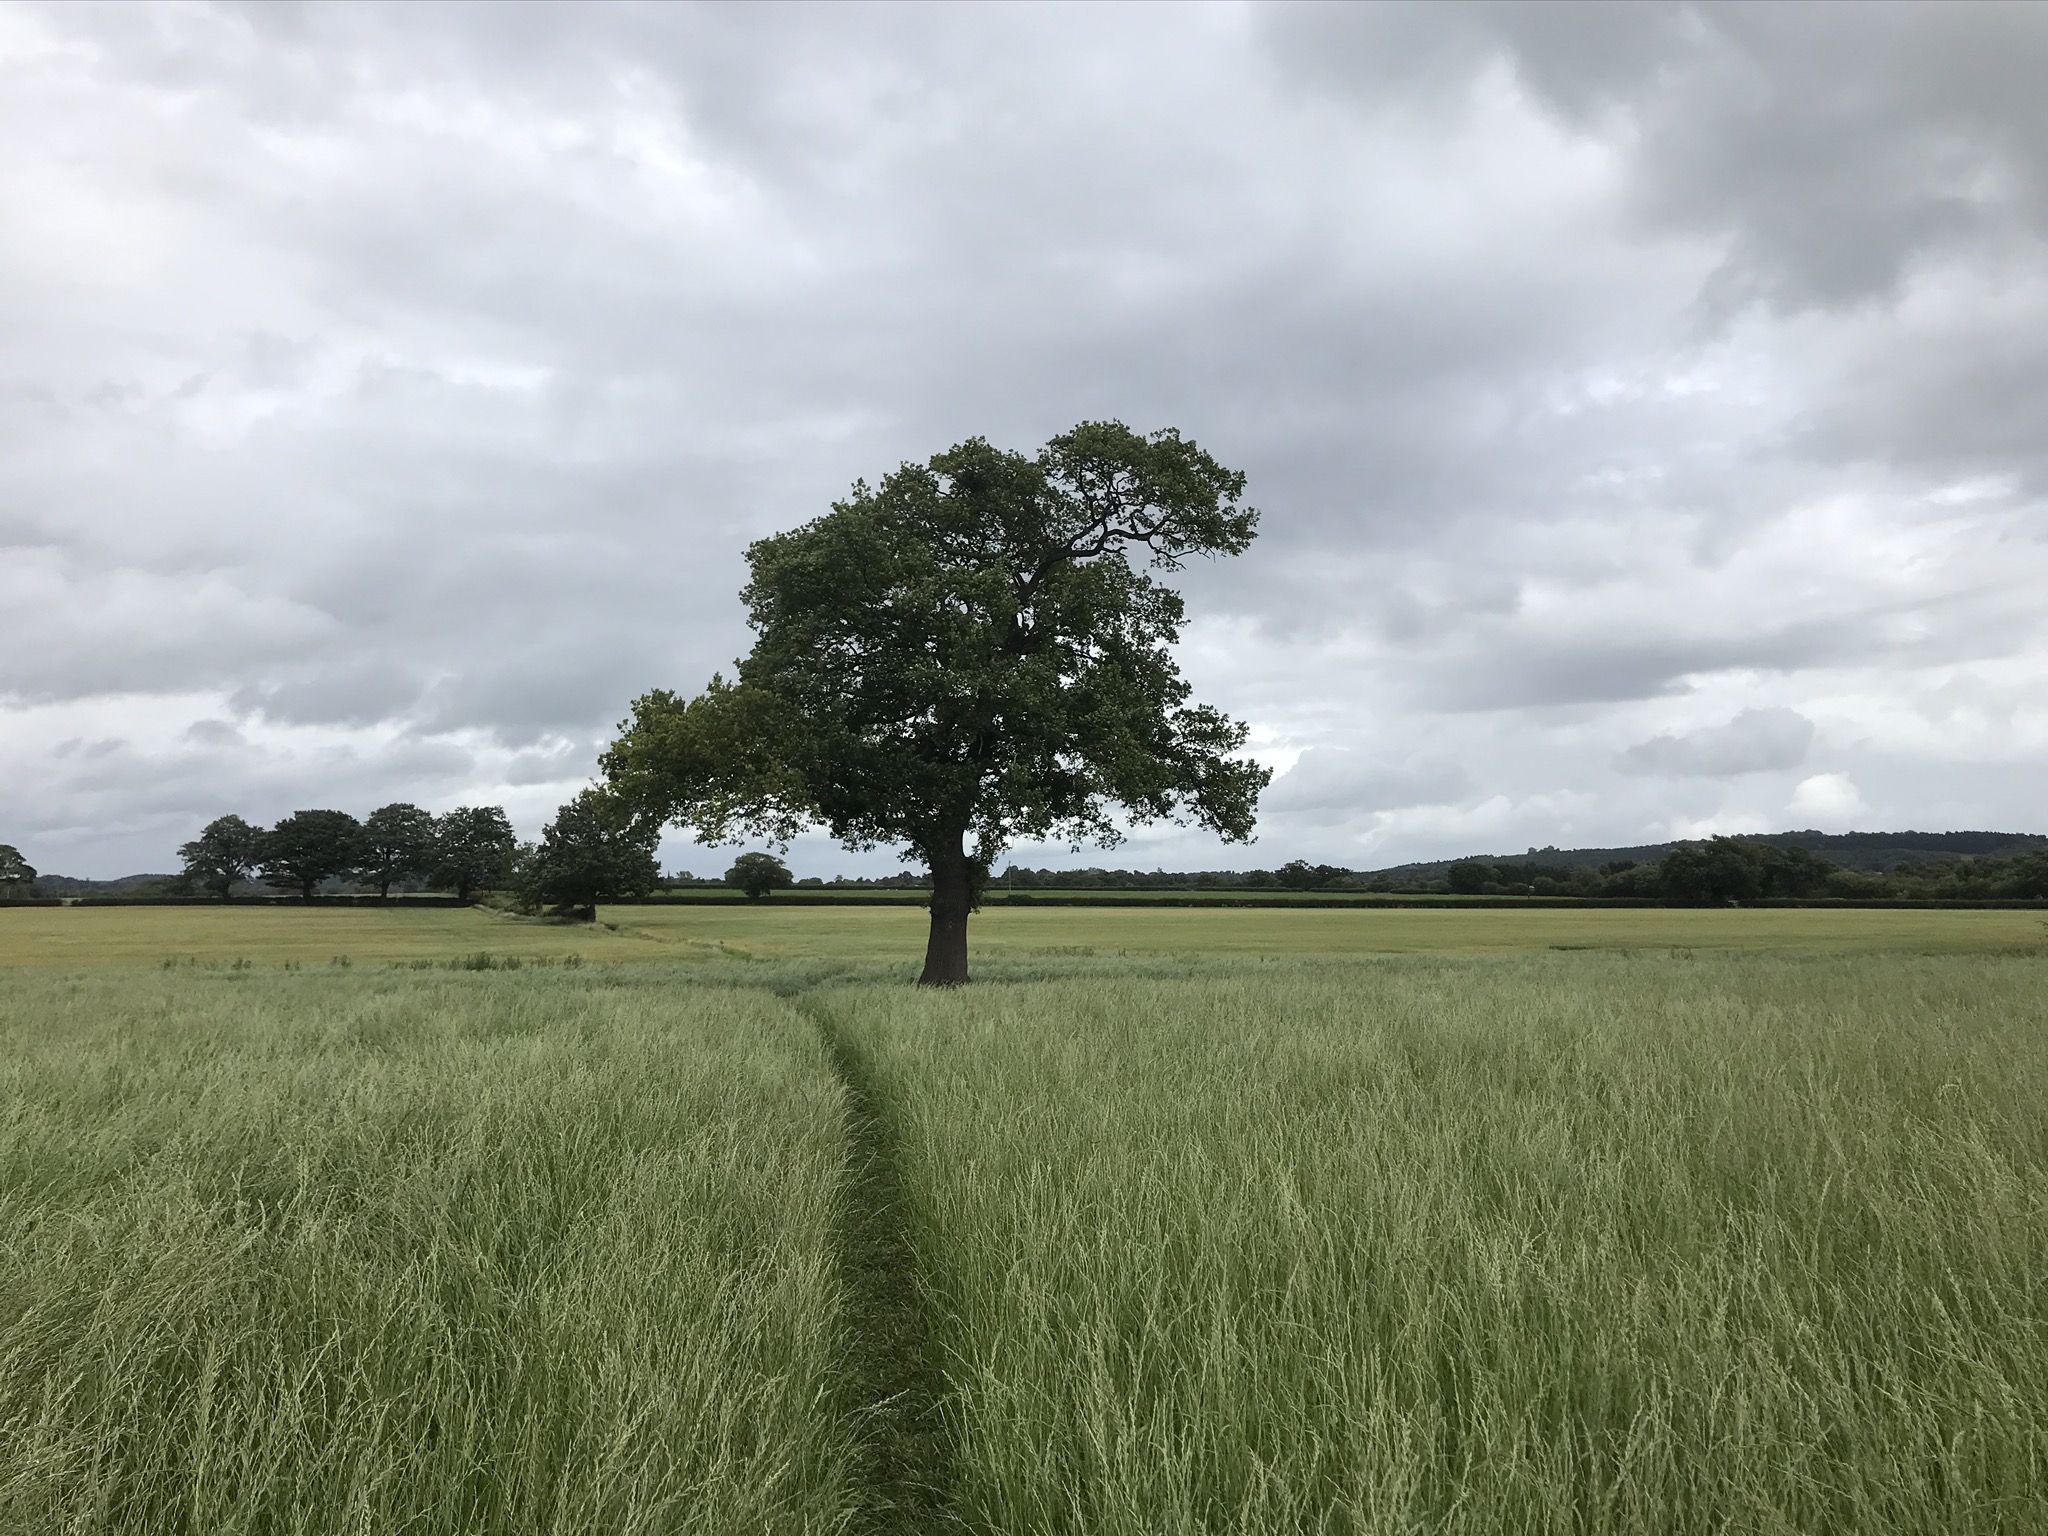 A path through long grass towards a single tree under a grey sky